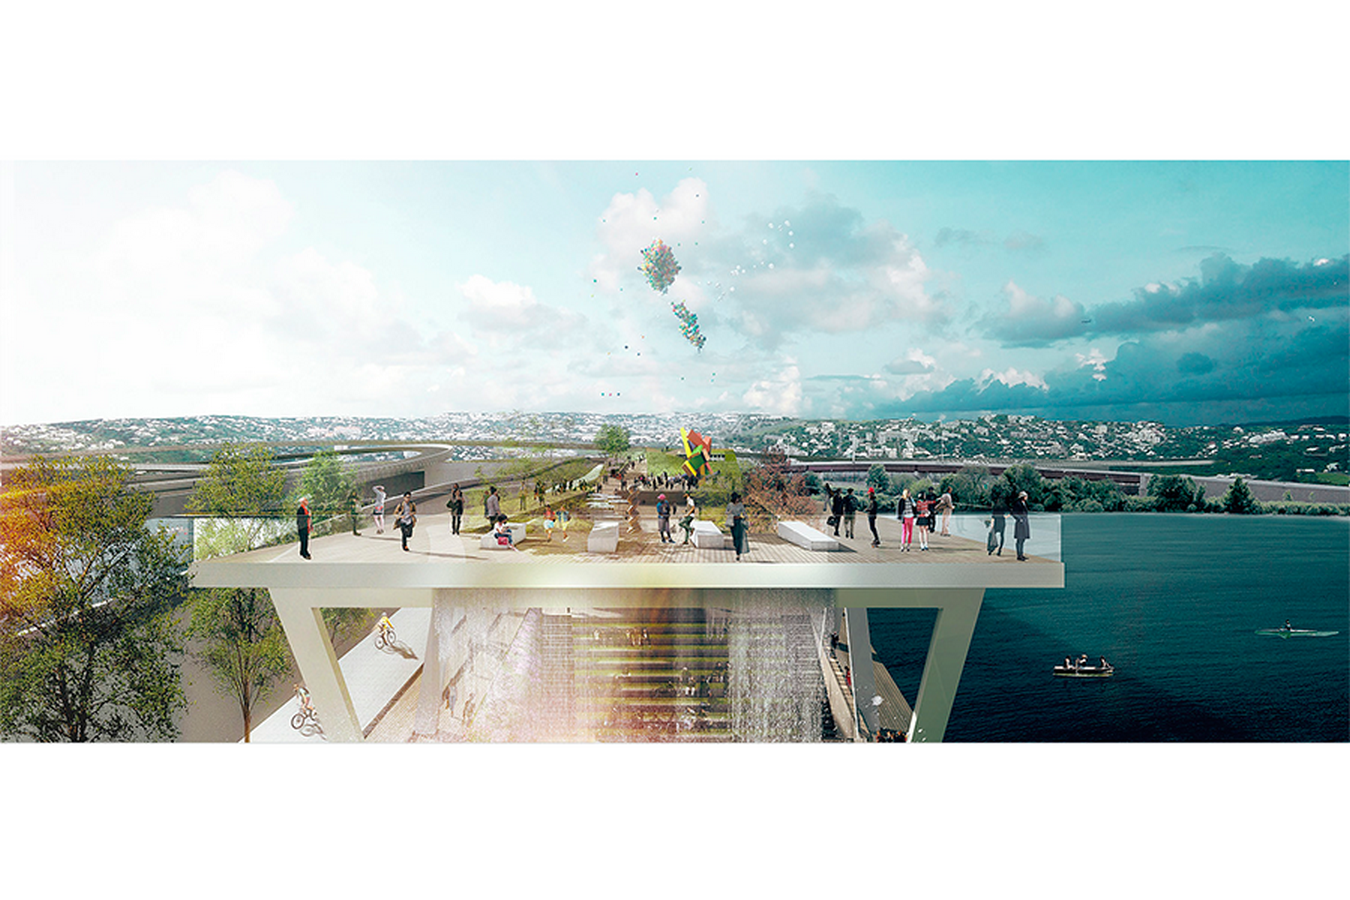 11th Street Bridge Park by Rem Koolhaas: Uniting the divided city - Sheet13